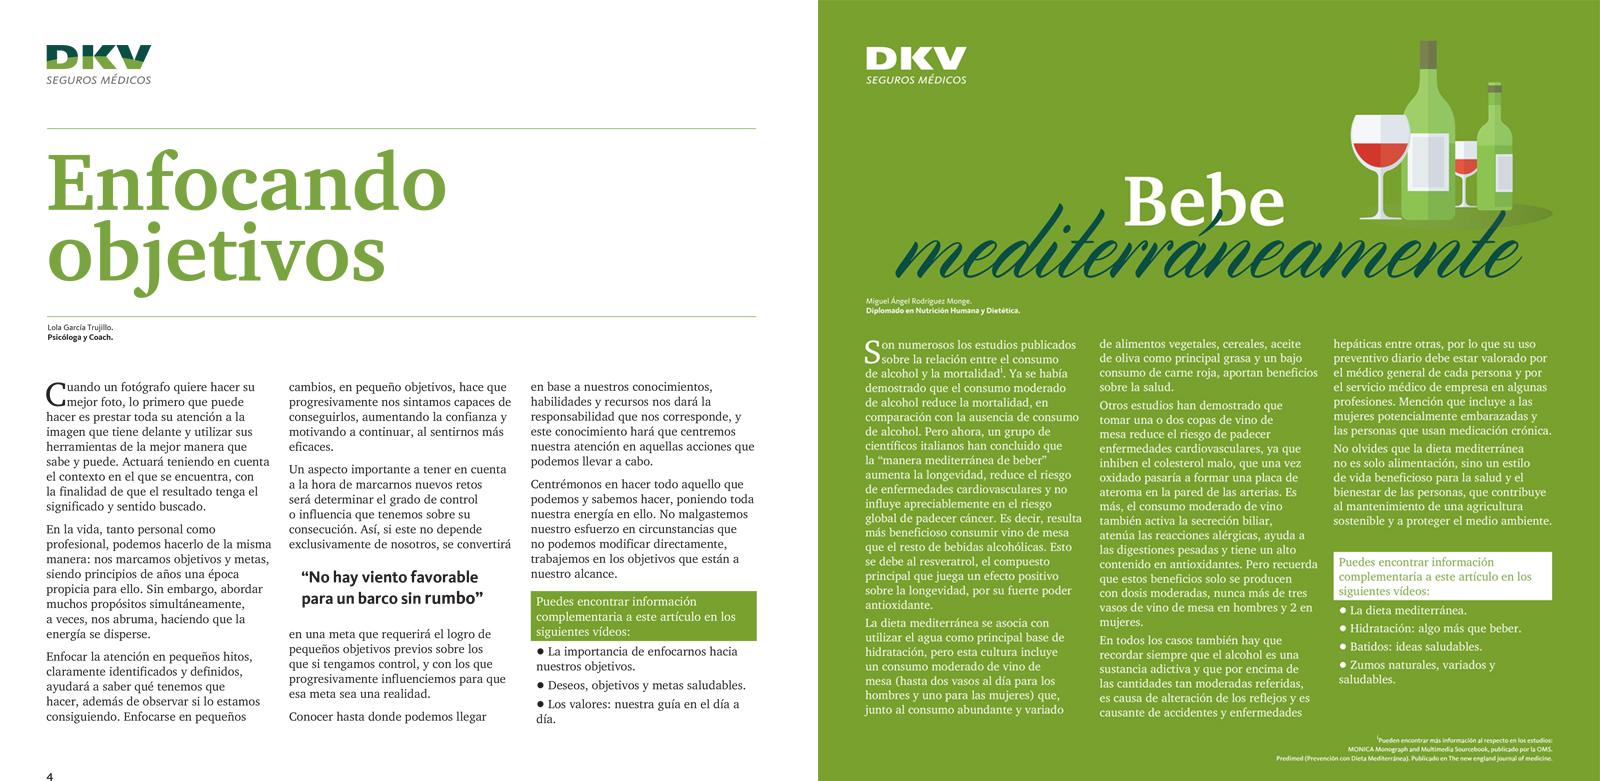 int2-revista-dkv-rk-estudio